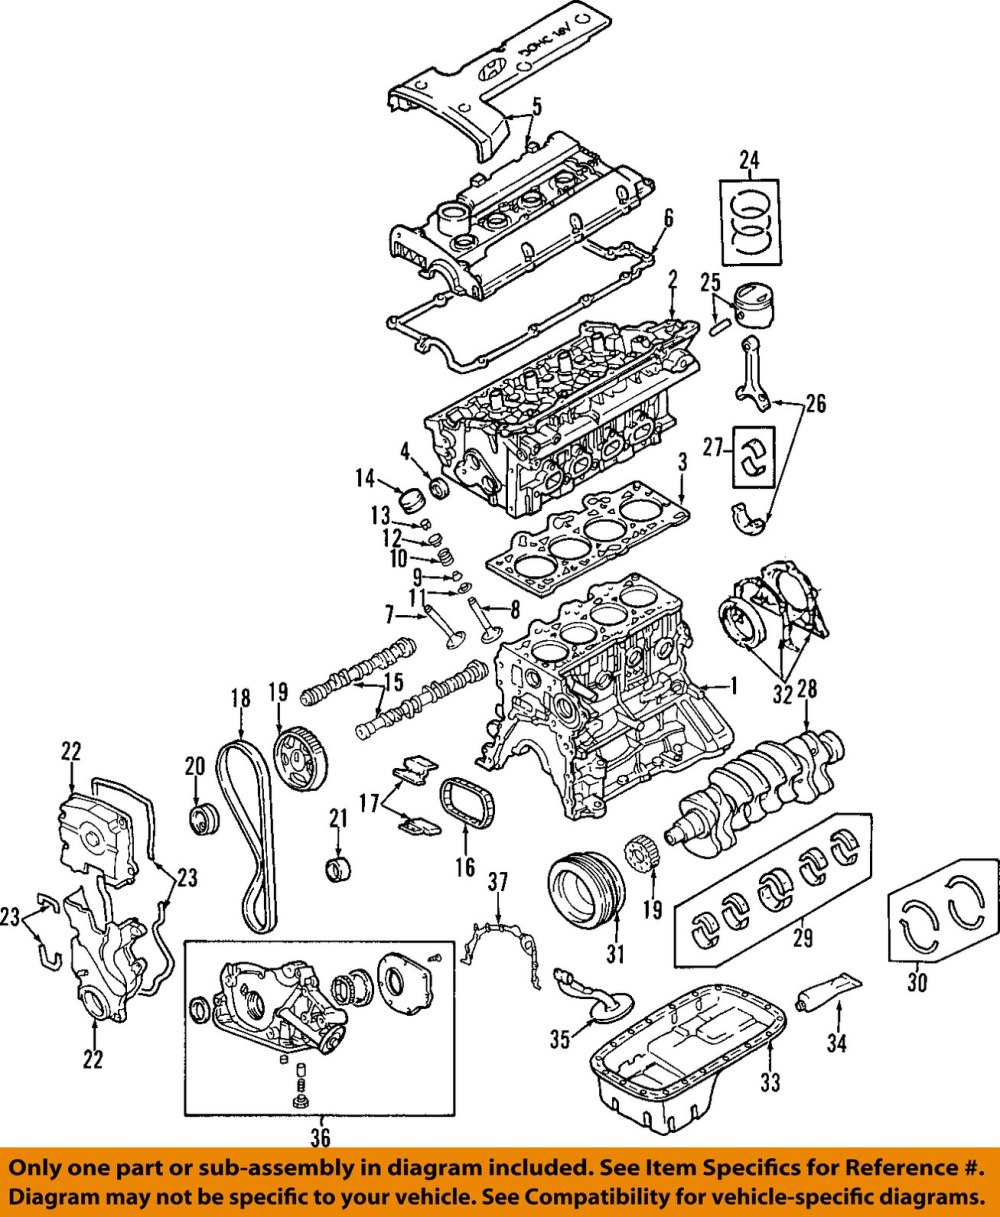 medium resolution of 2 0 hyundai engine oil diagram wiring diagram mega hyundai 2 0 engine diagram